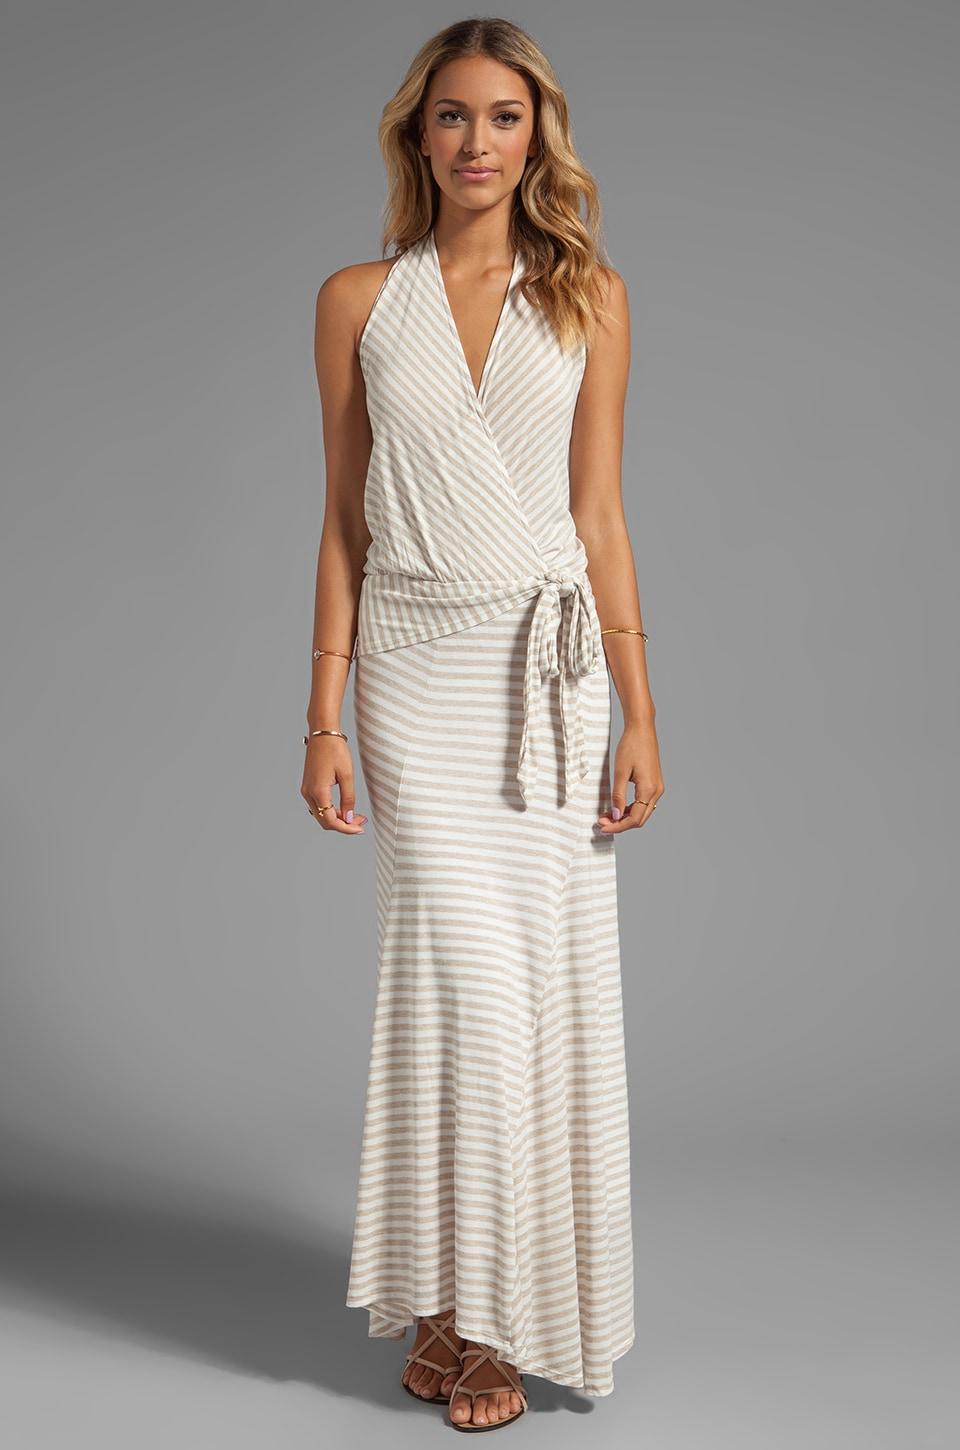 Ella Moss Gabi Stripe Maxi Dress in Linen